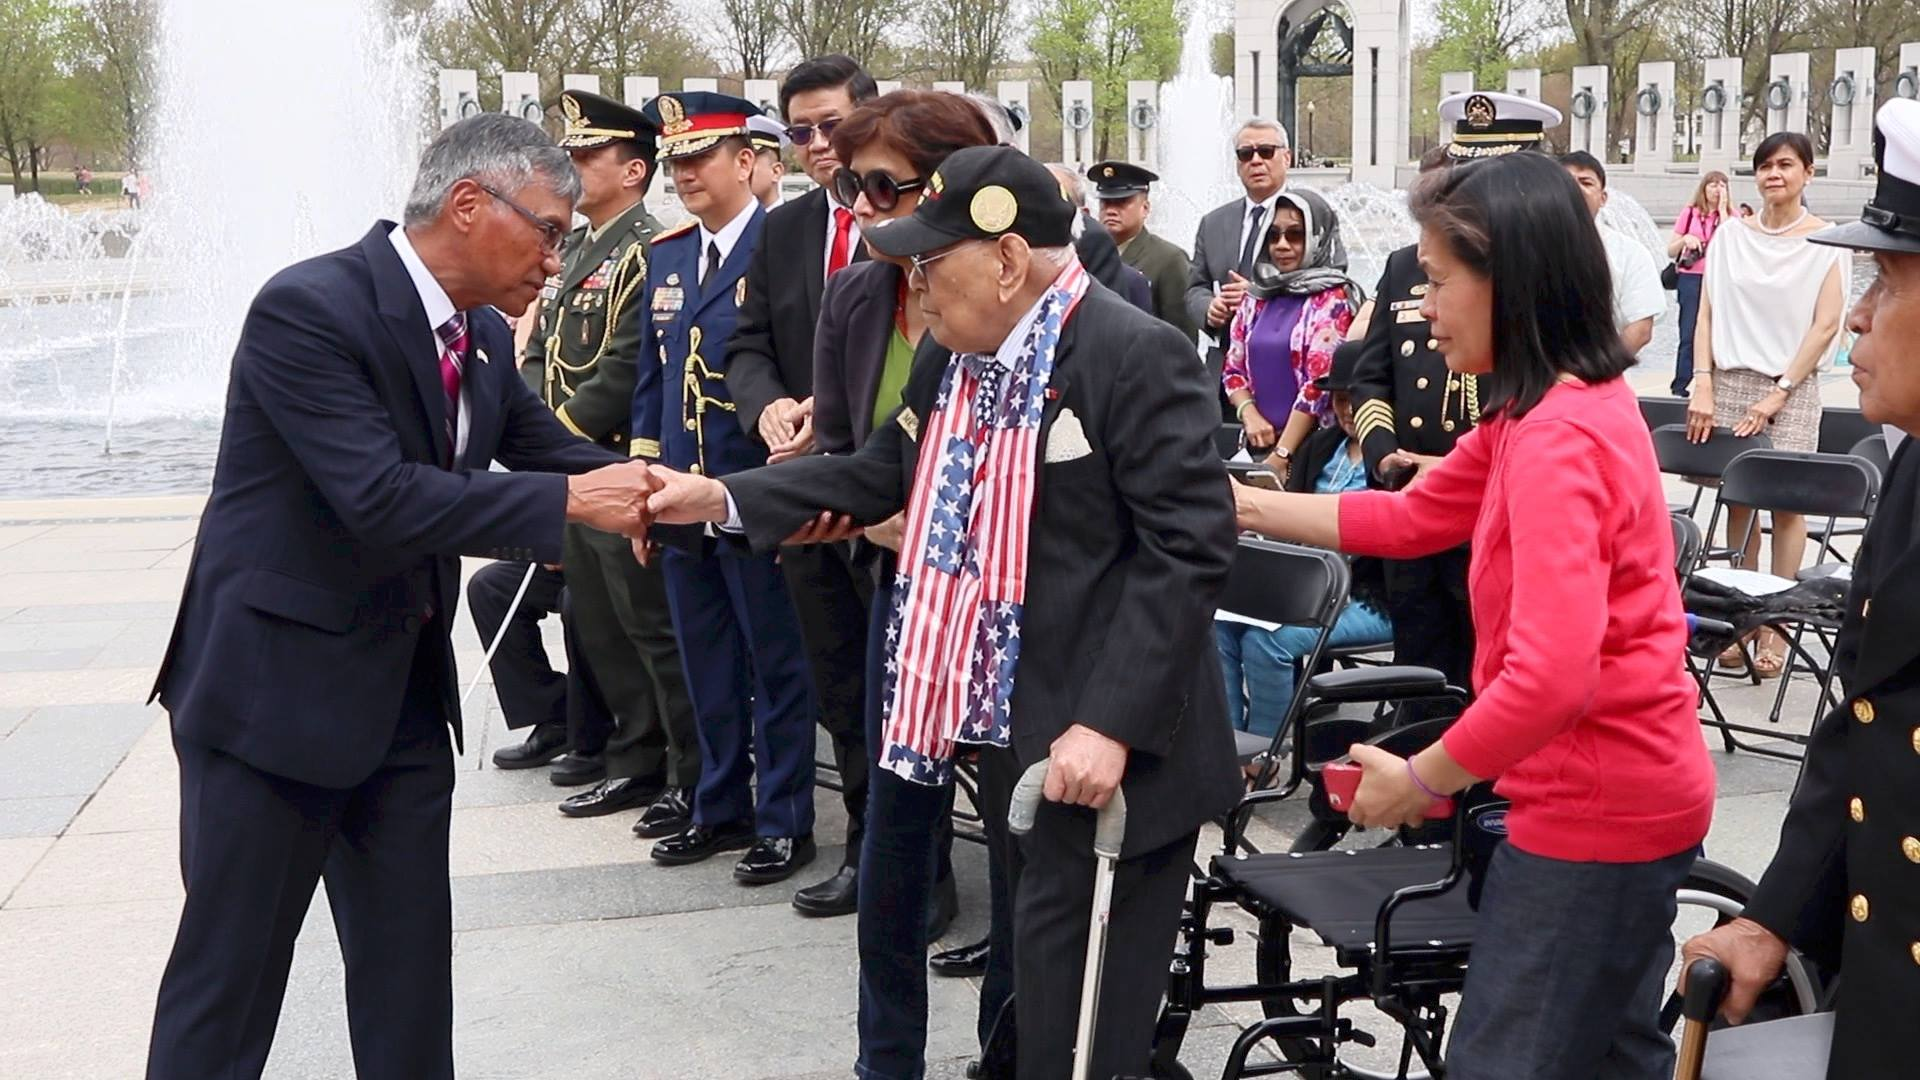 Maj. Gen. Antonio Taguba, a son of a Filipino World War II veteran, shakes the hand of 101-year-old Celestino Almeda, the oldest living Filipino veteran in the Washington DC area, during the Bataan Day commemoration at the National World War II Memorial. (Photo by Bing Branigin)